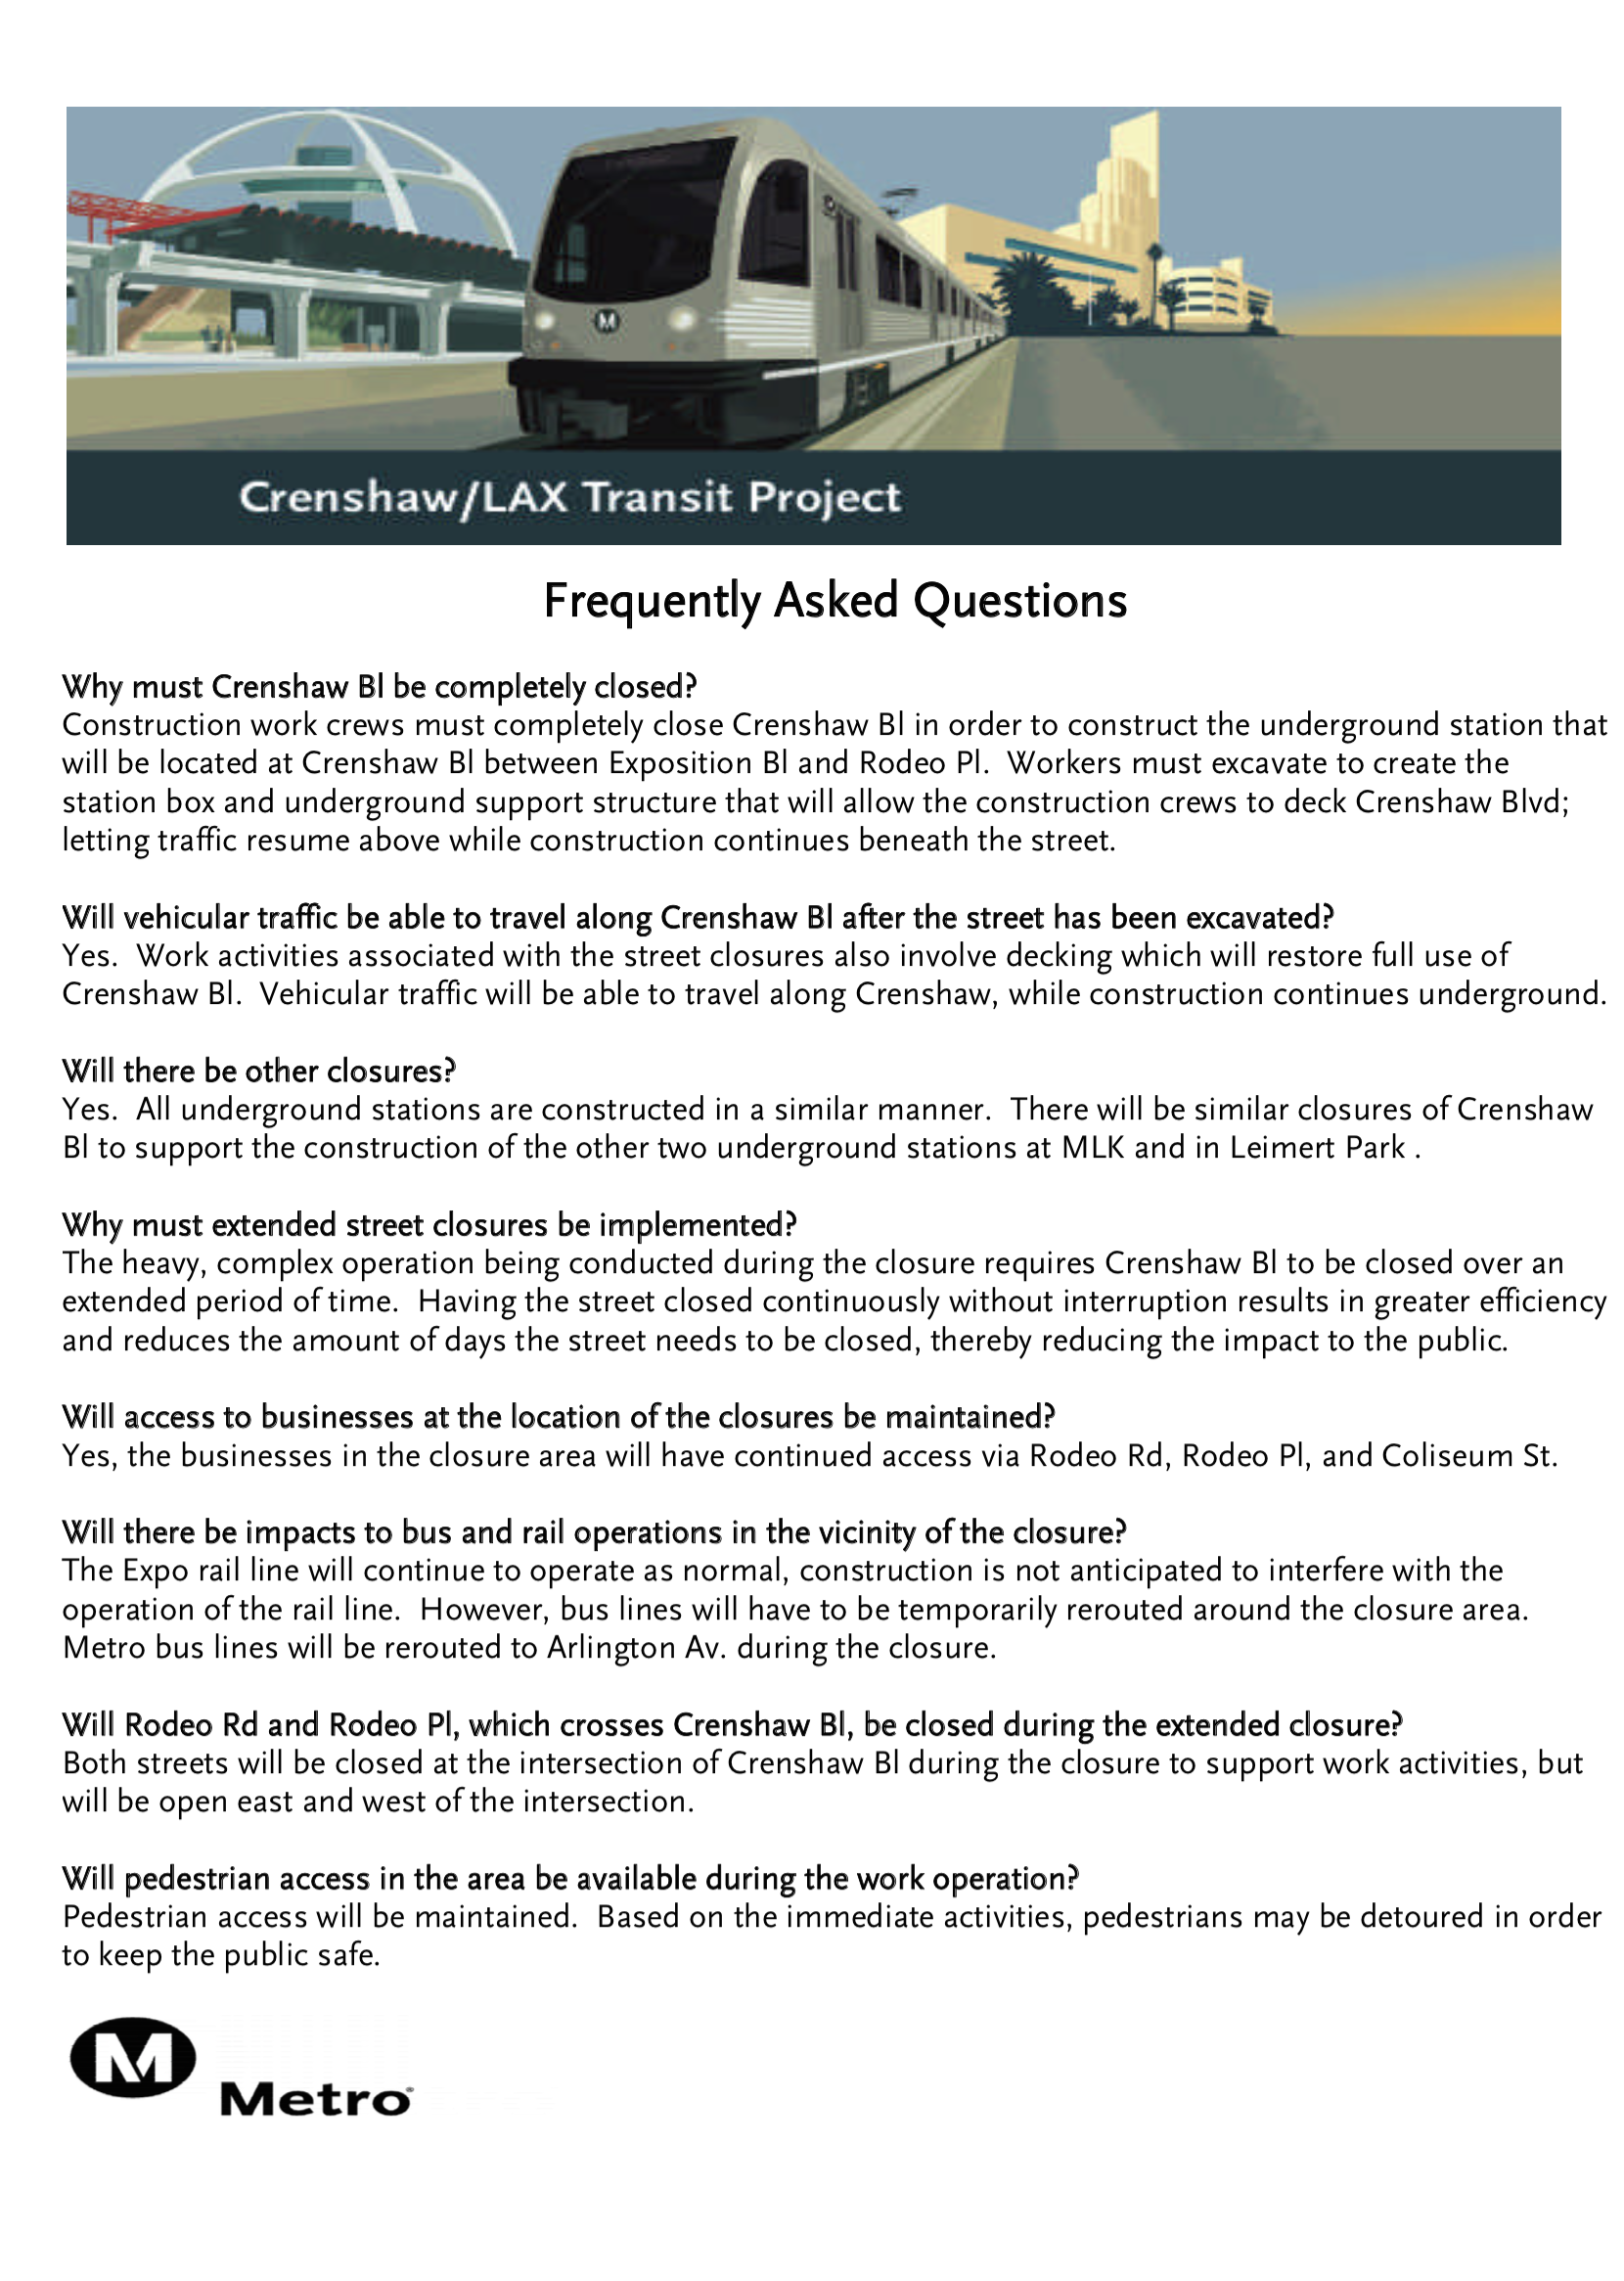 crenshaw closure faq